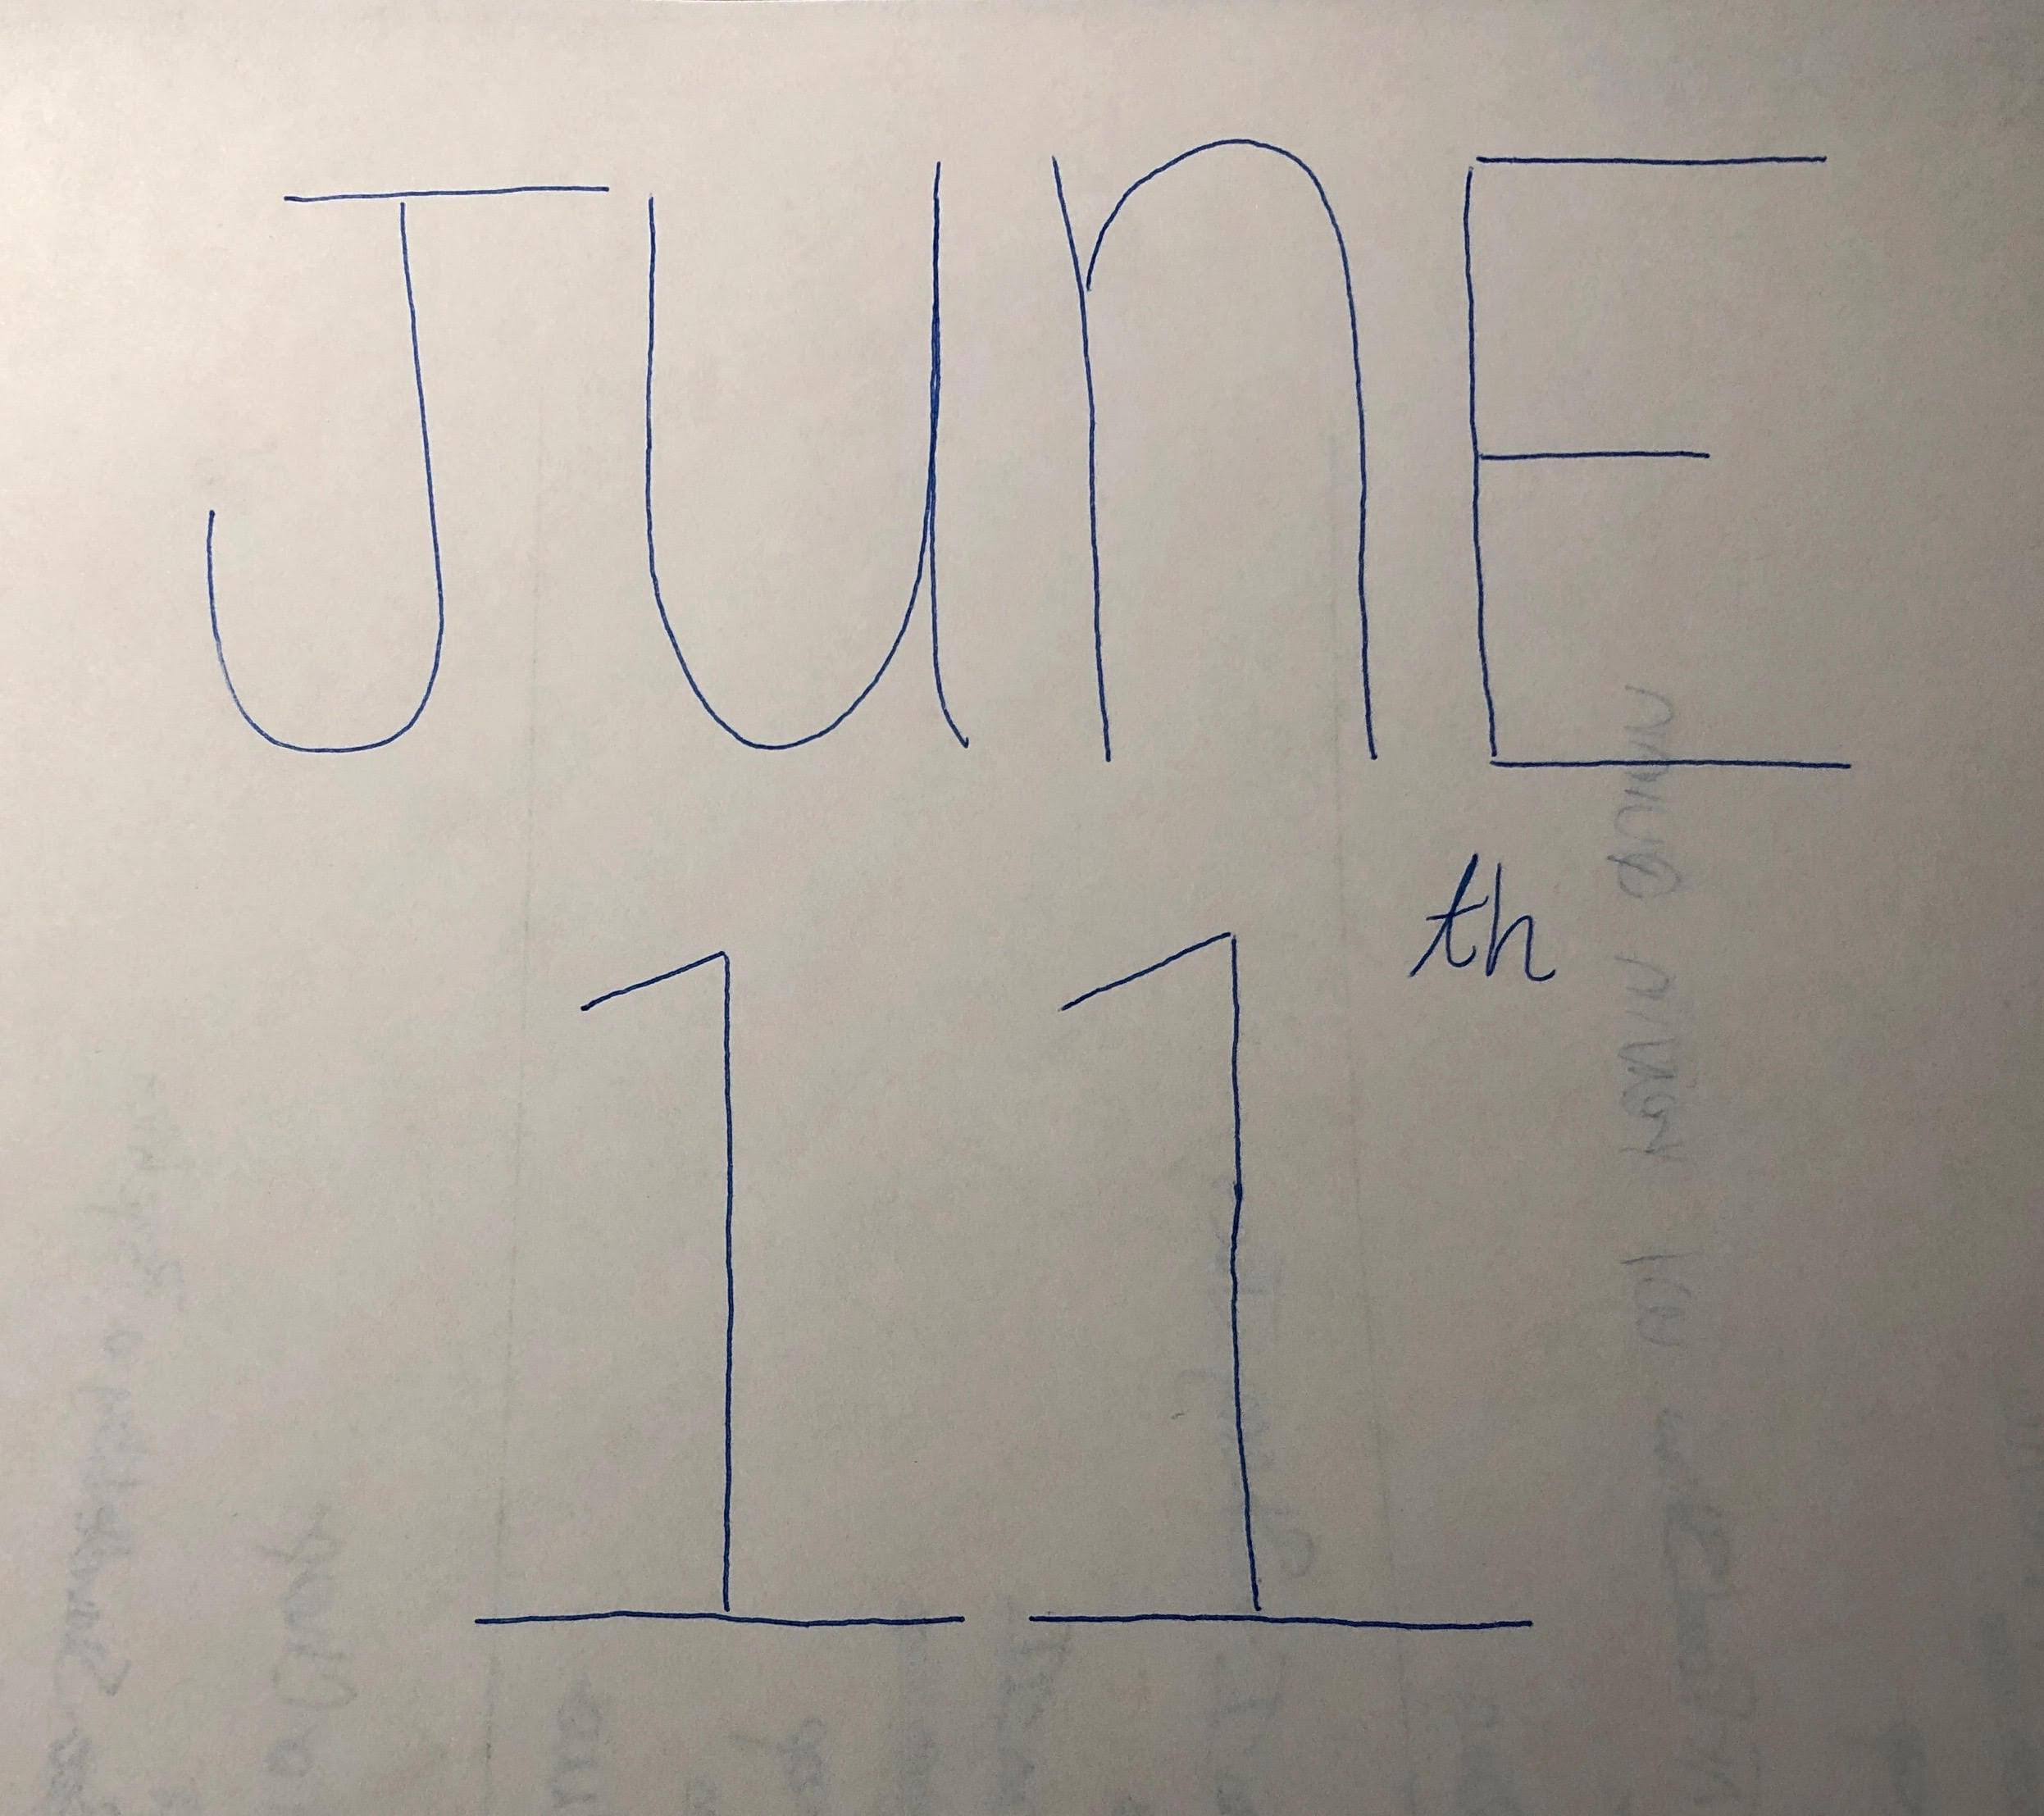 Teenager's Memory Keeps Resetting to June 11th